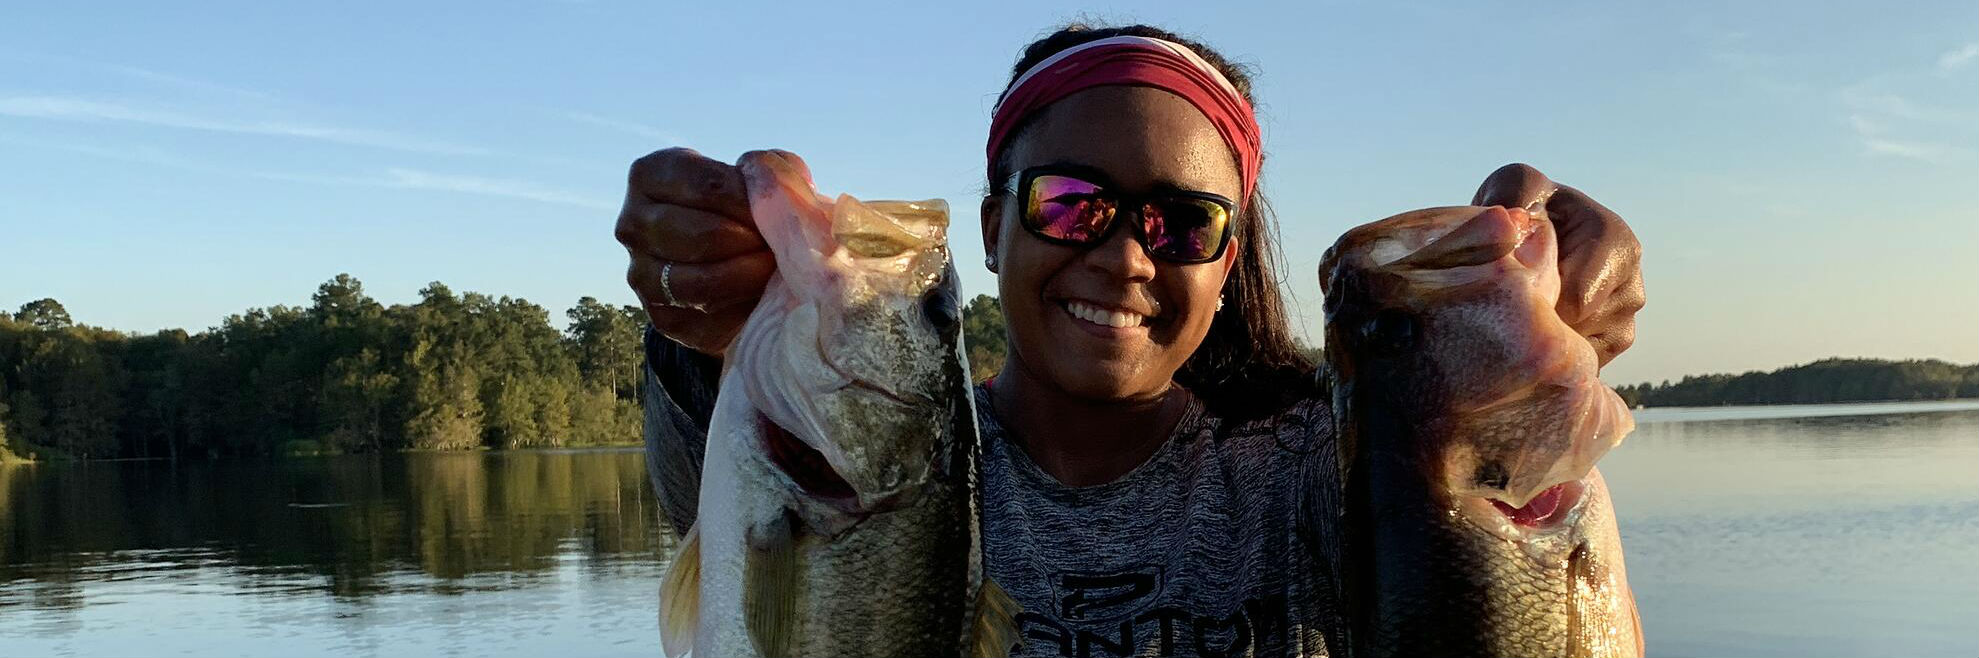 How to Get Started Fishing: An Interview with Anastasia Patterson